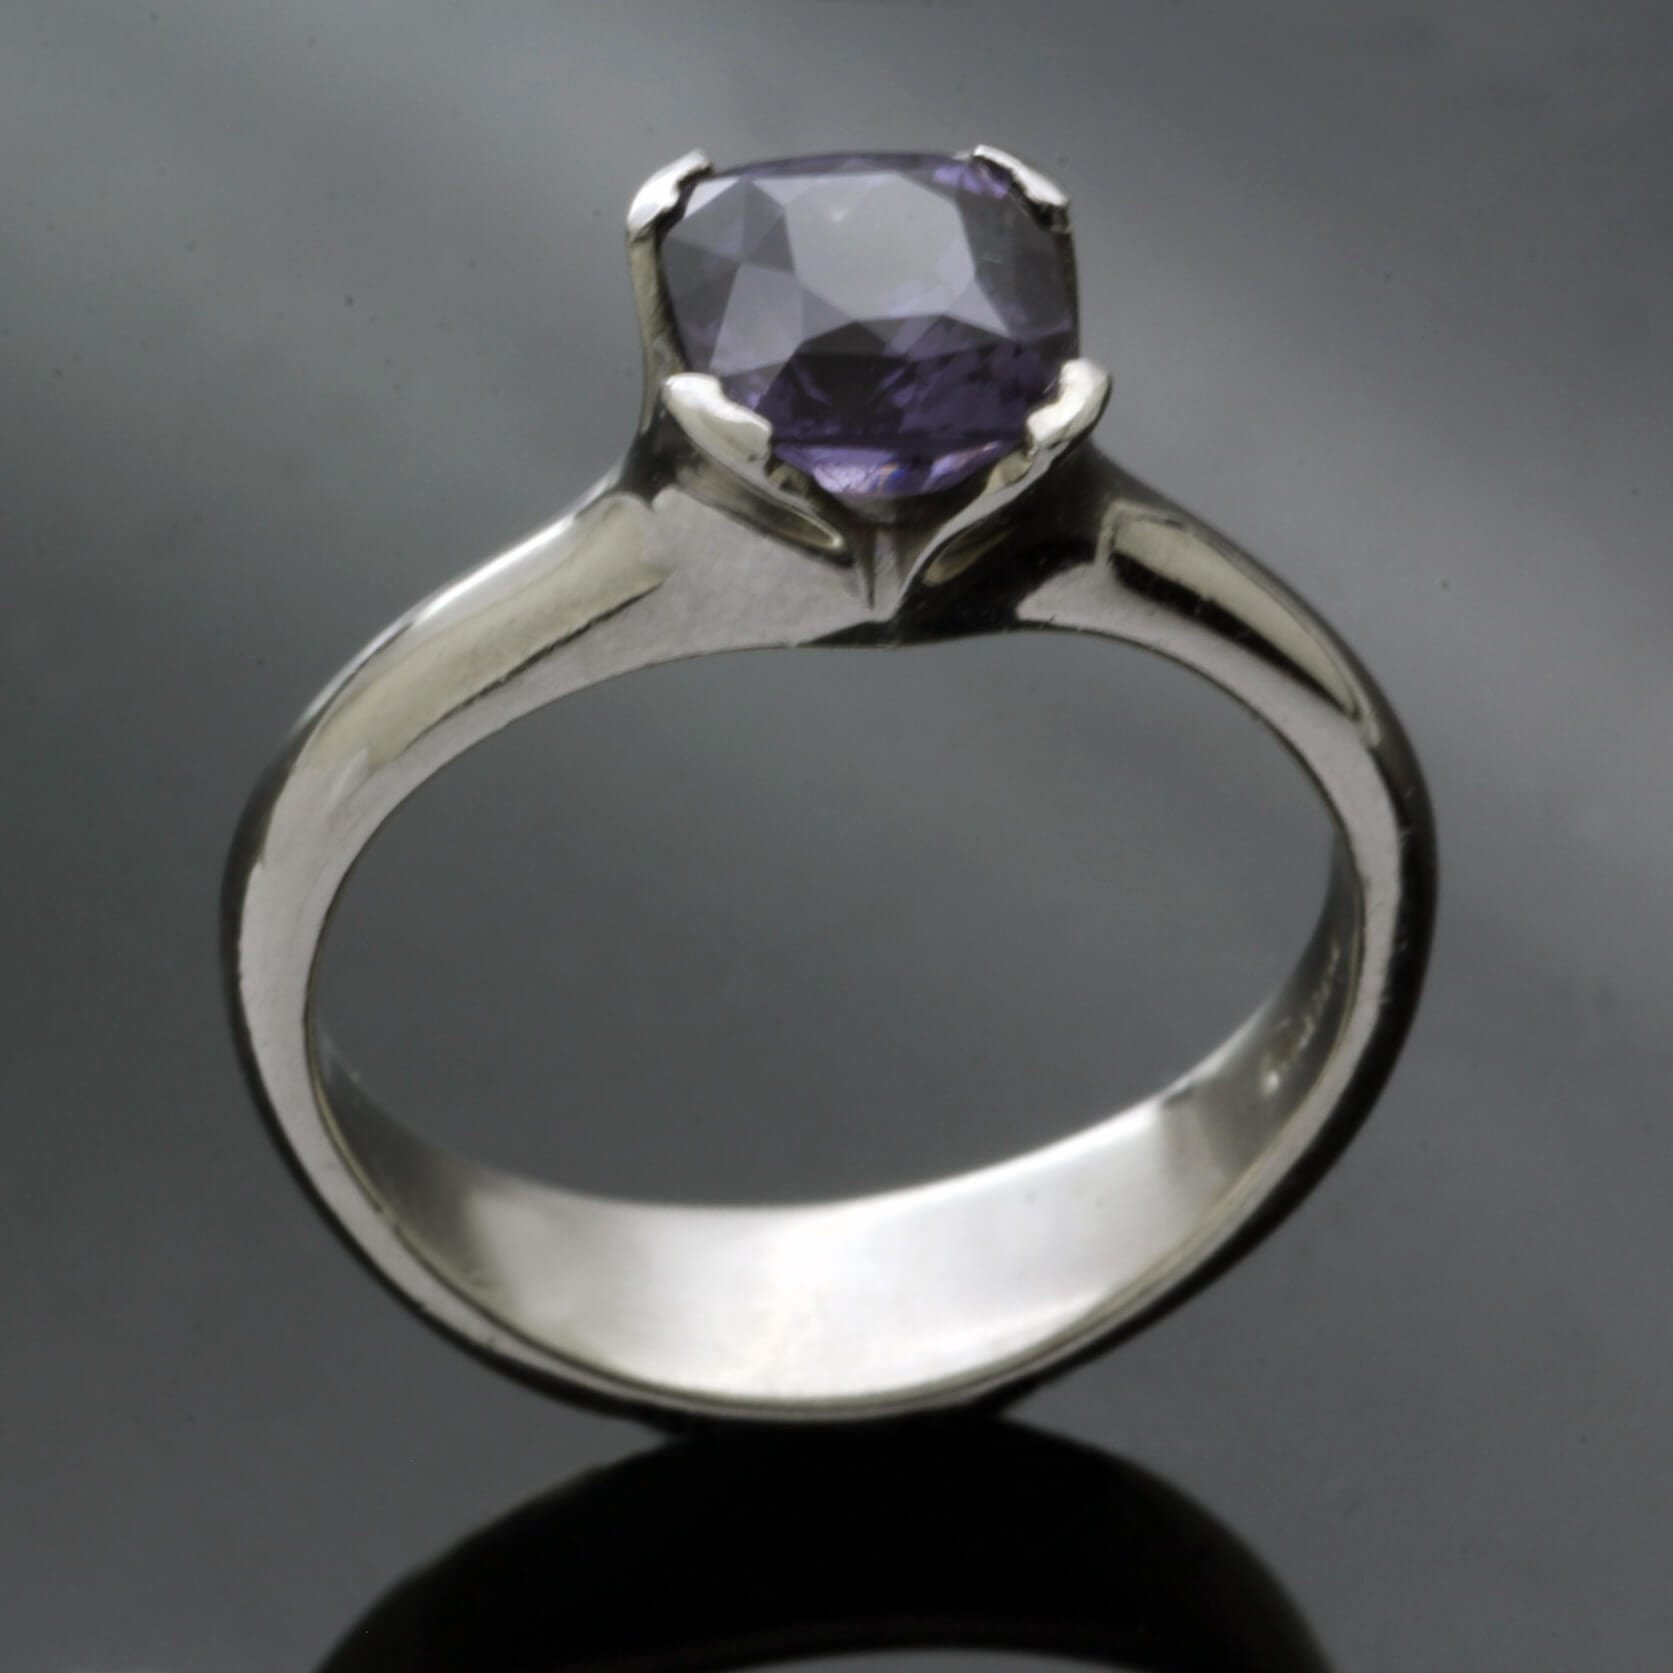 Mauve Spinel gem set in Palladium handcrafted engagement ring